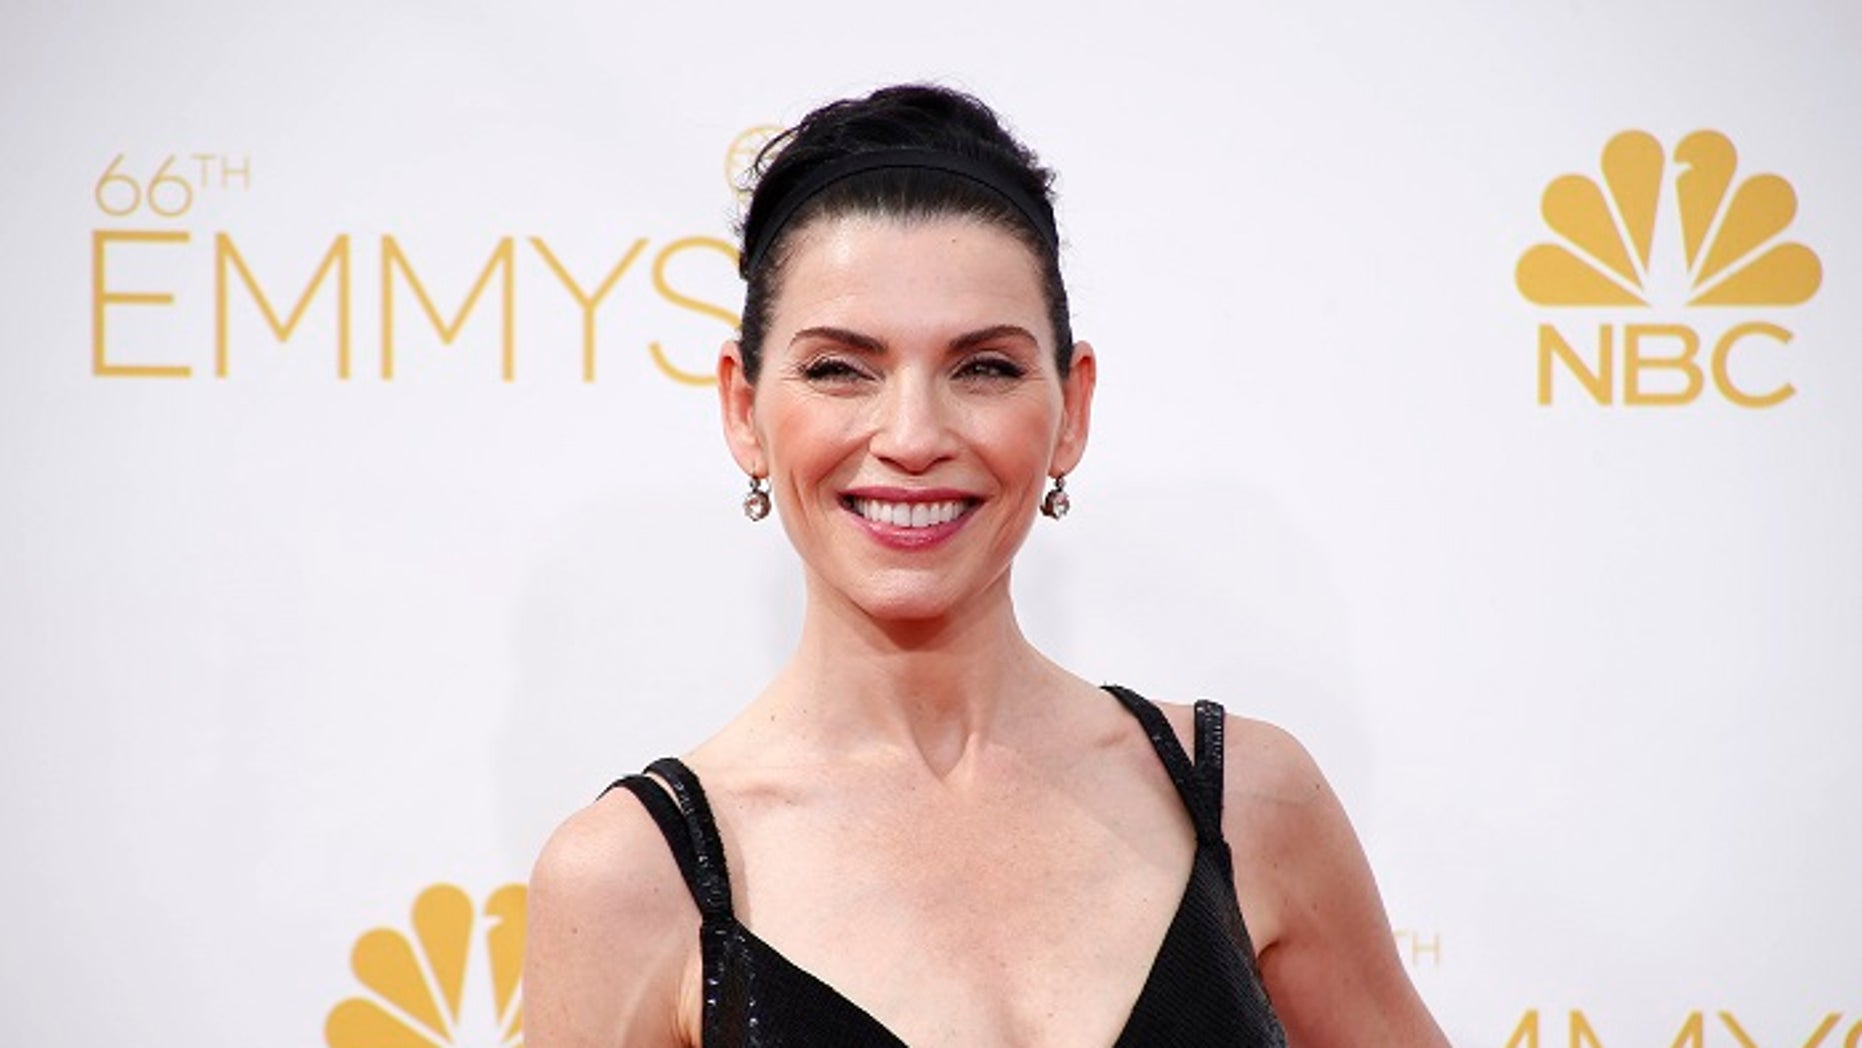 """""""The Good Wife"""" star Julianna Margulies said she had uncomfortable hotel room encounters with both Harvey Weinstein and Steven Seagal."""